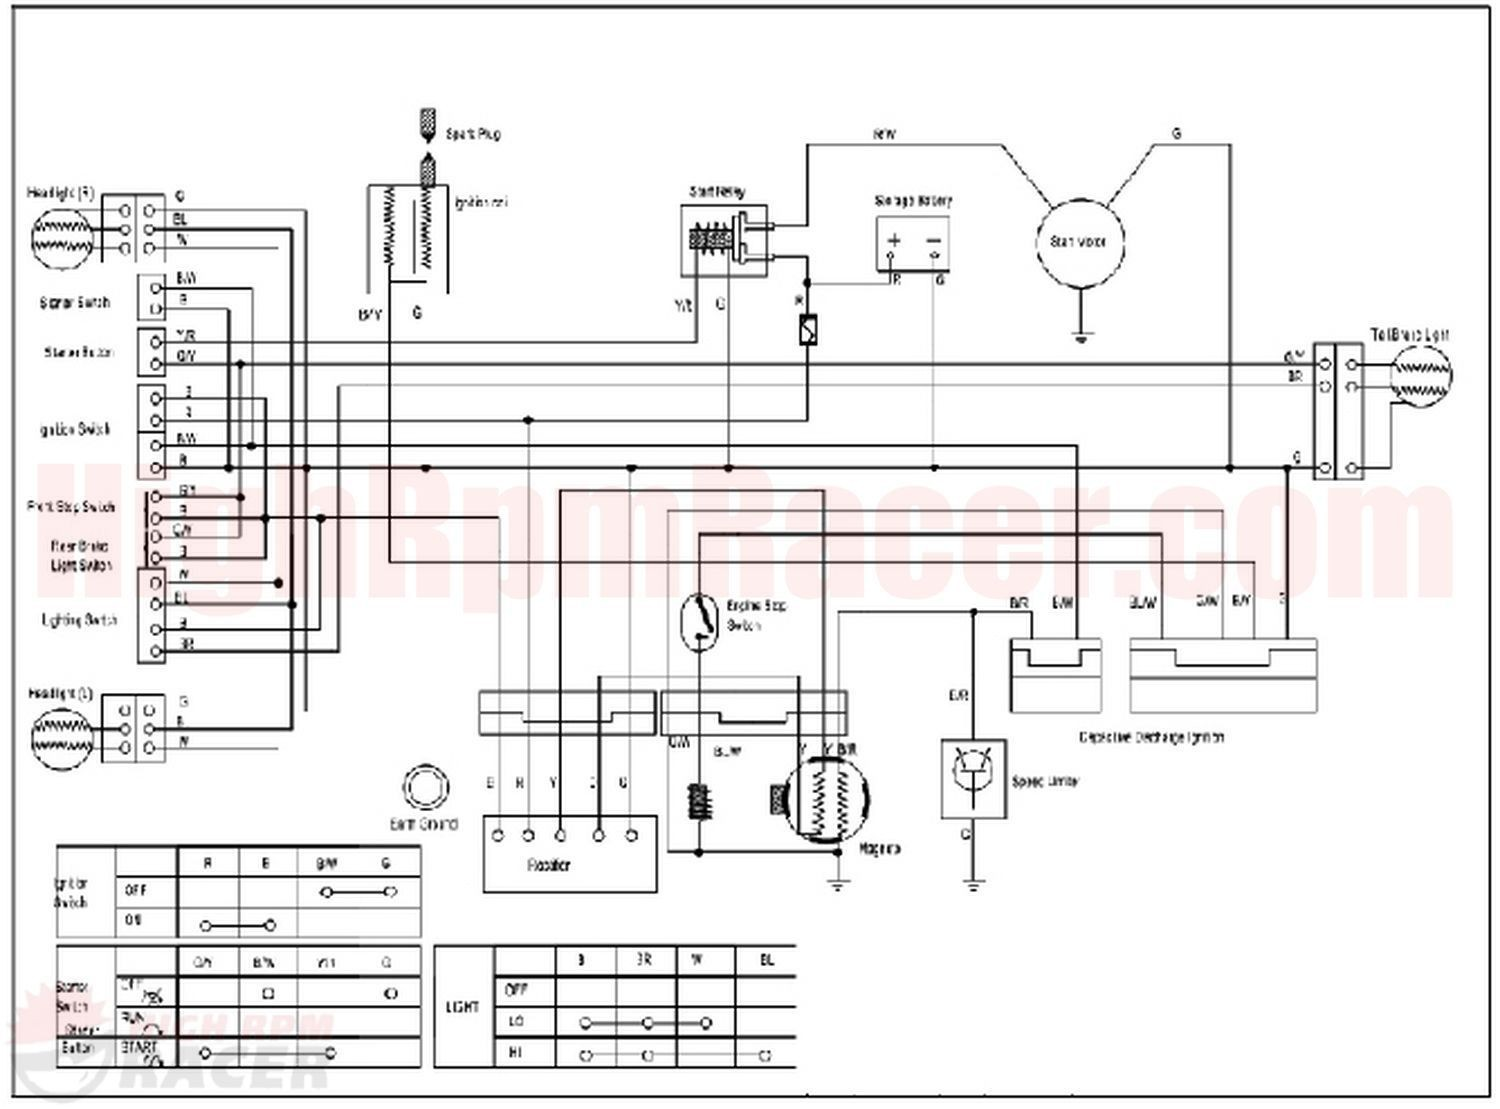 taotao 110 wiring diagram wiring diagram u2022 rh championapp co 2013 taotao 50 wiring diagram 2014 taotao 50 wiring diagram